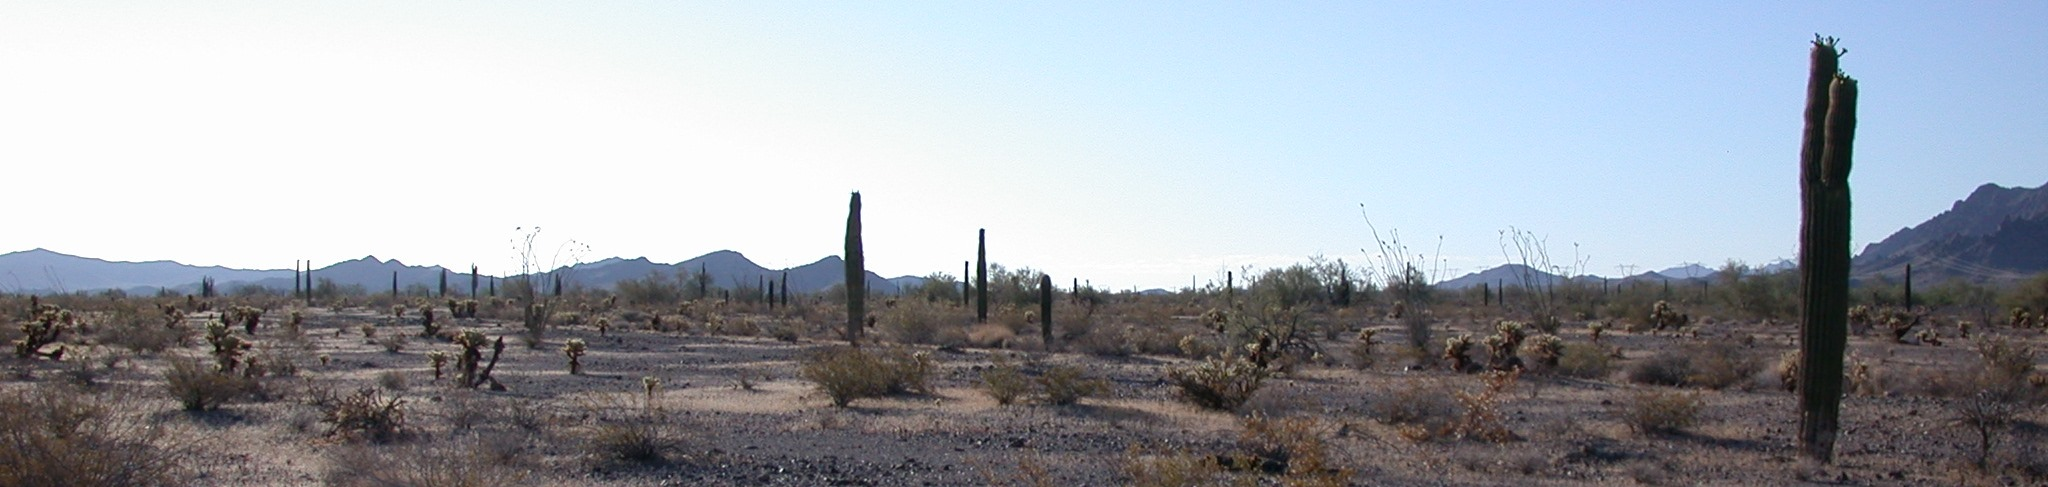 Saguaro cacti are the tallest things standing at Kofa National Wildlife Refuge, near Yuma, Arizona. Credit, Taly Drezner.